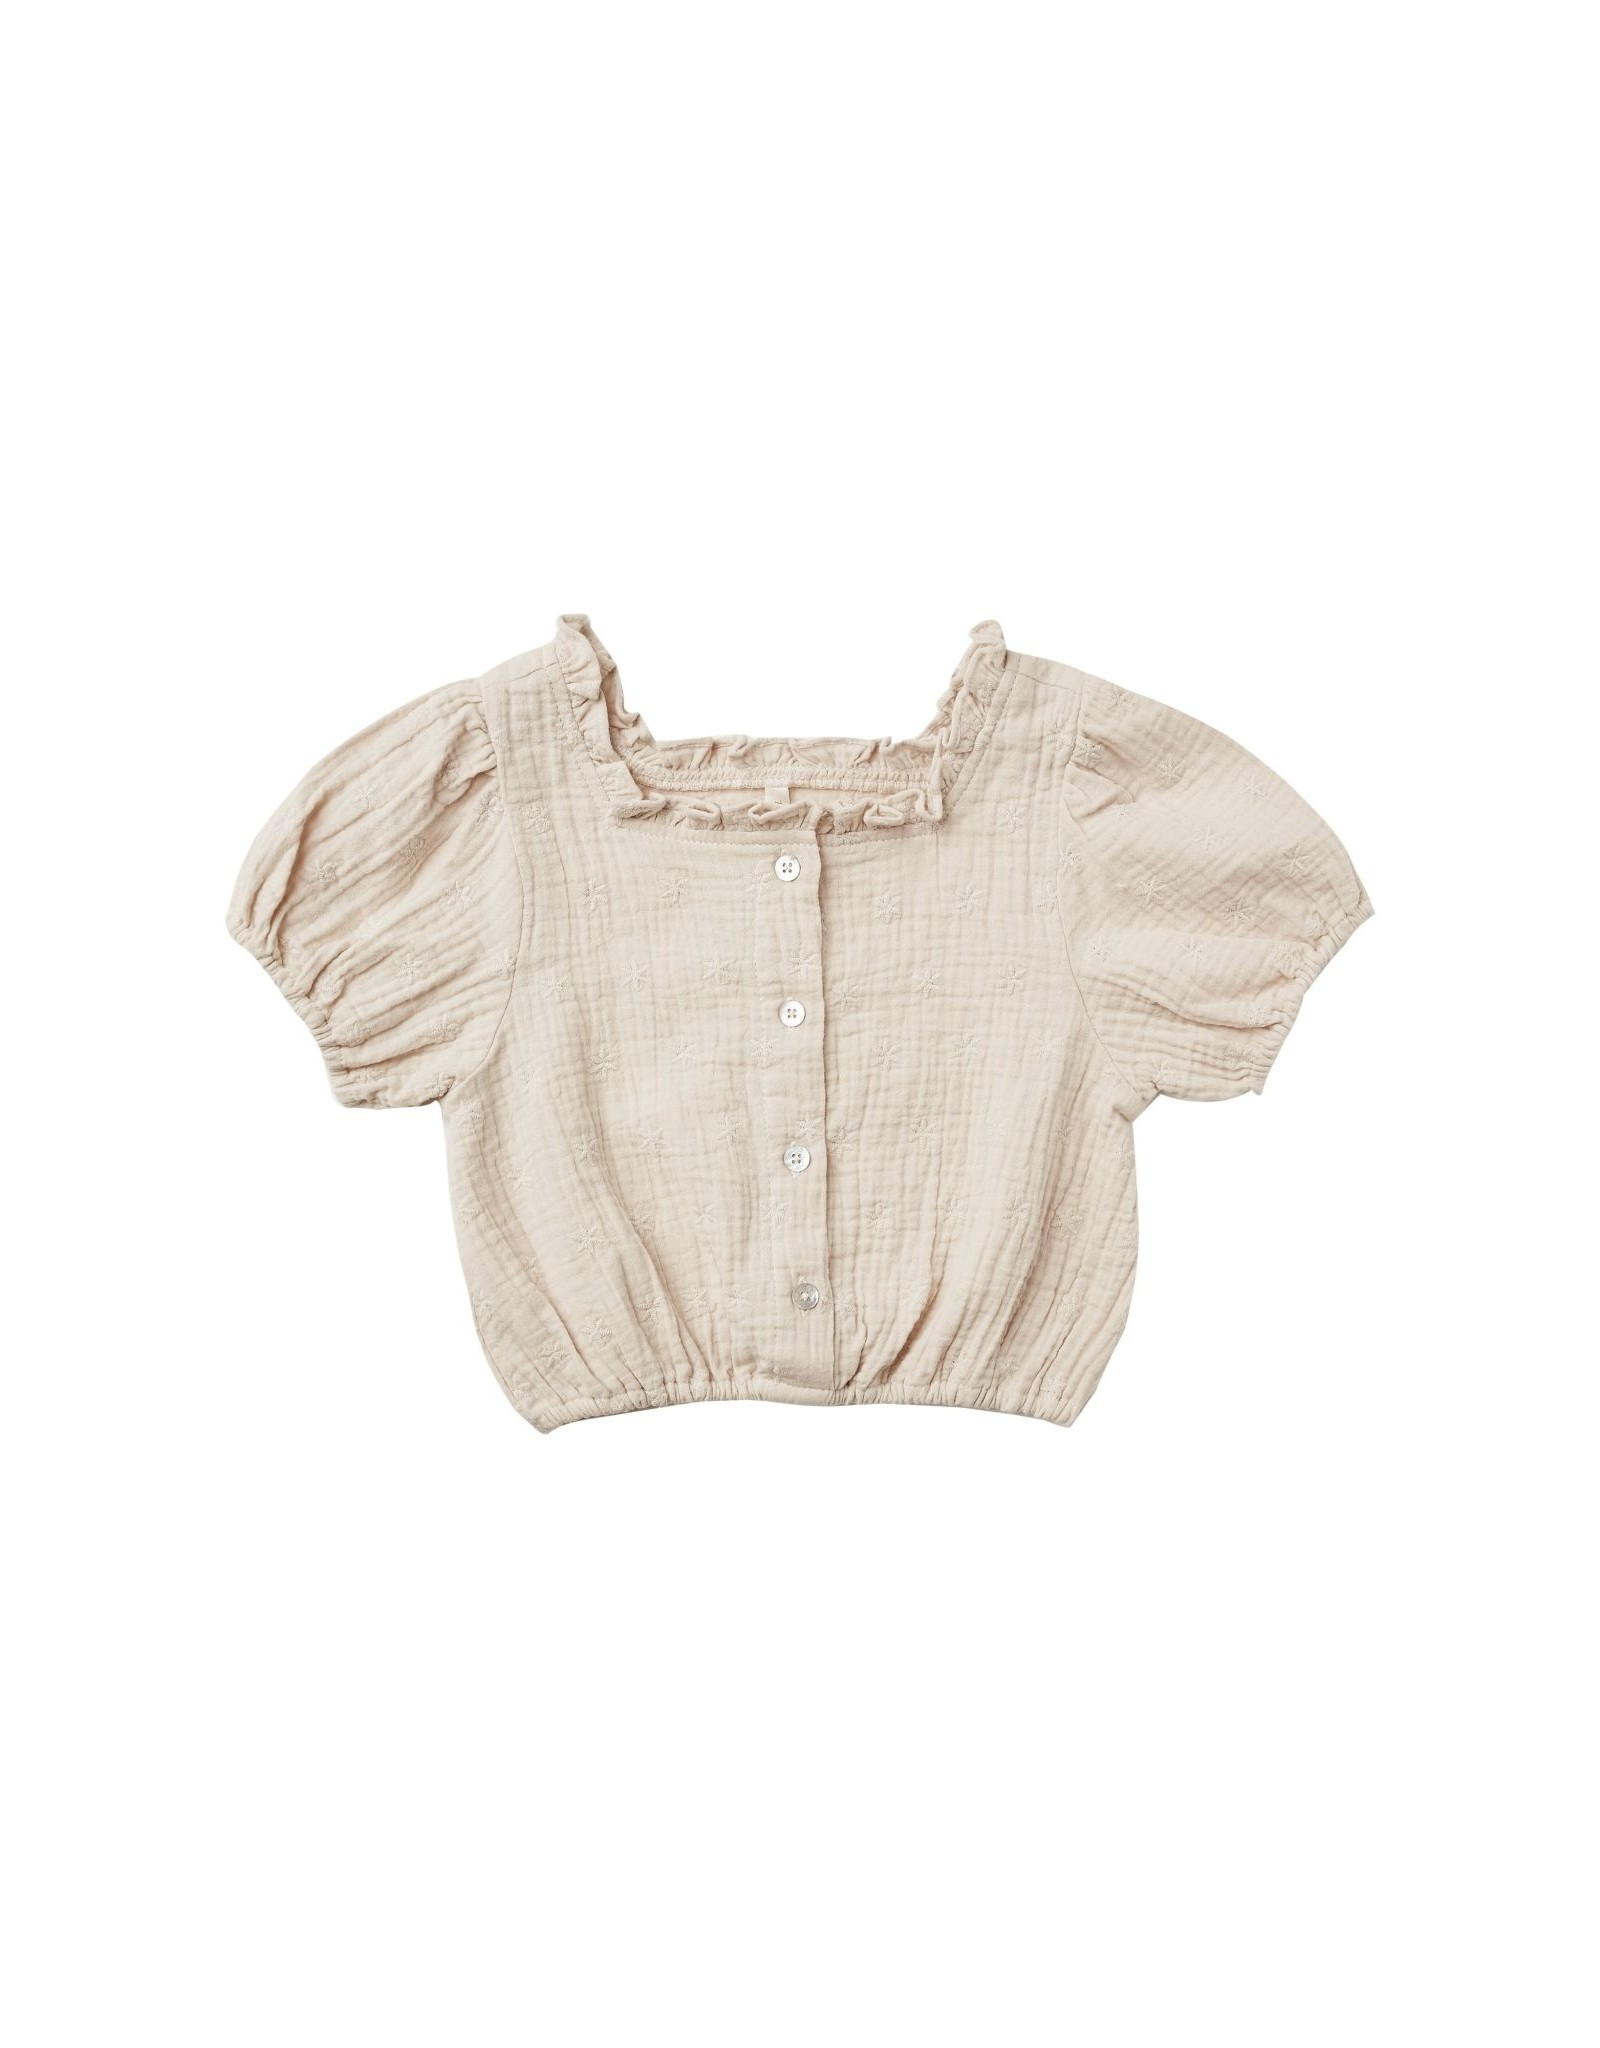 Rylee and Cru dylan blouse- daisy